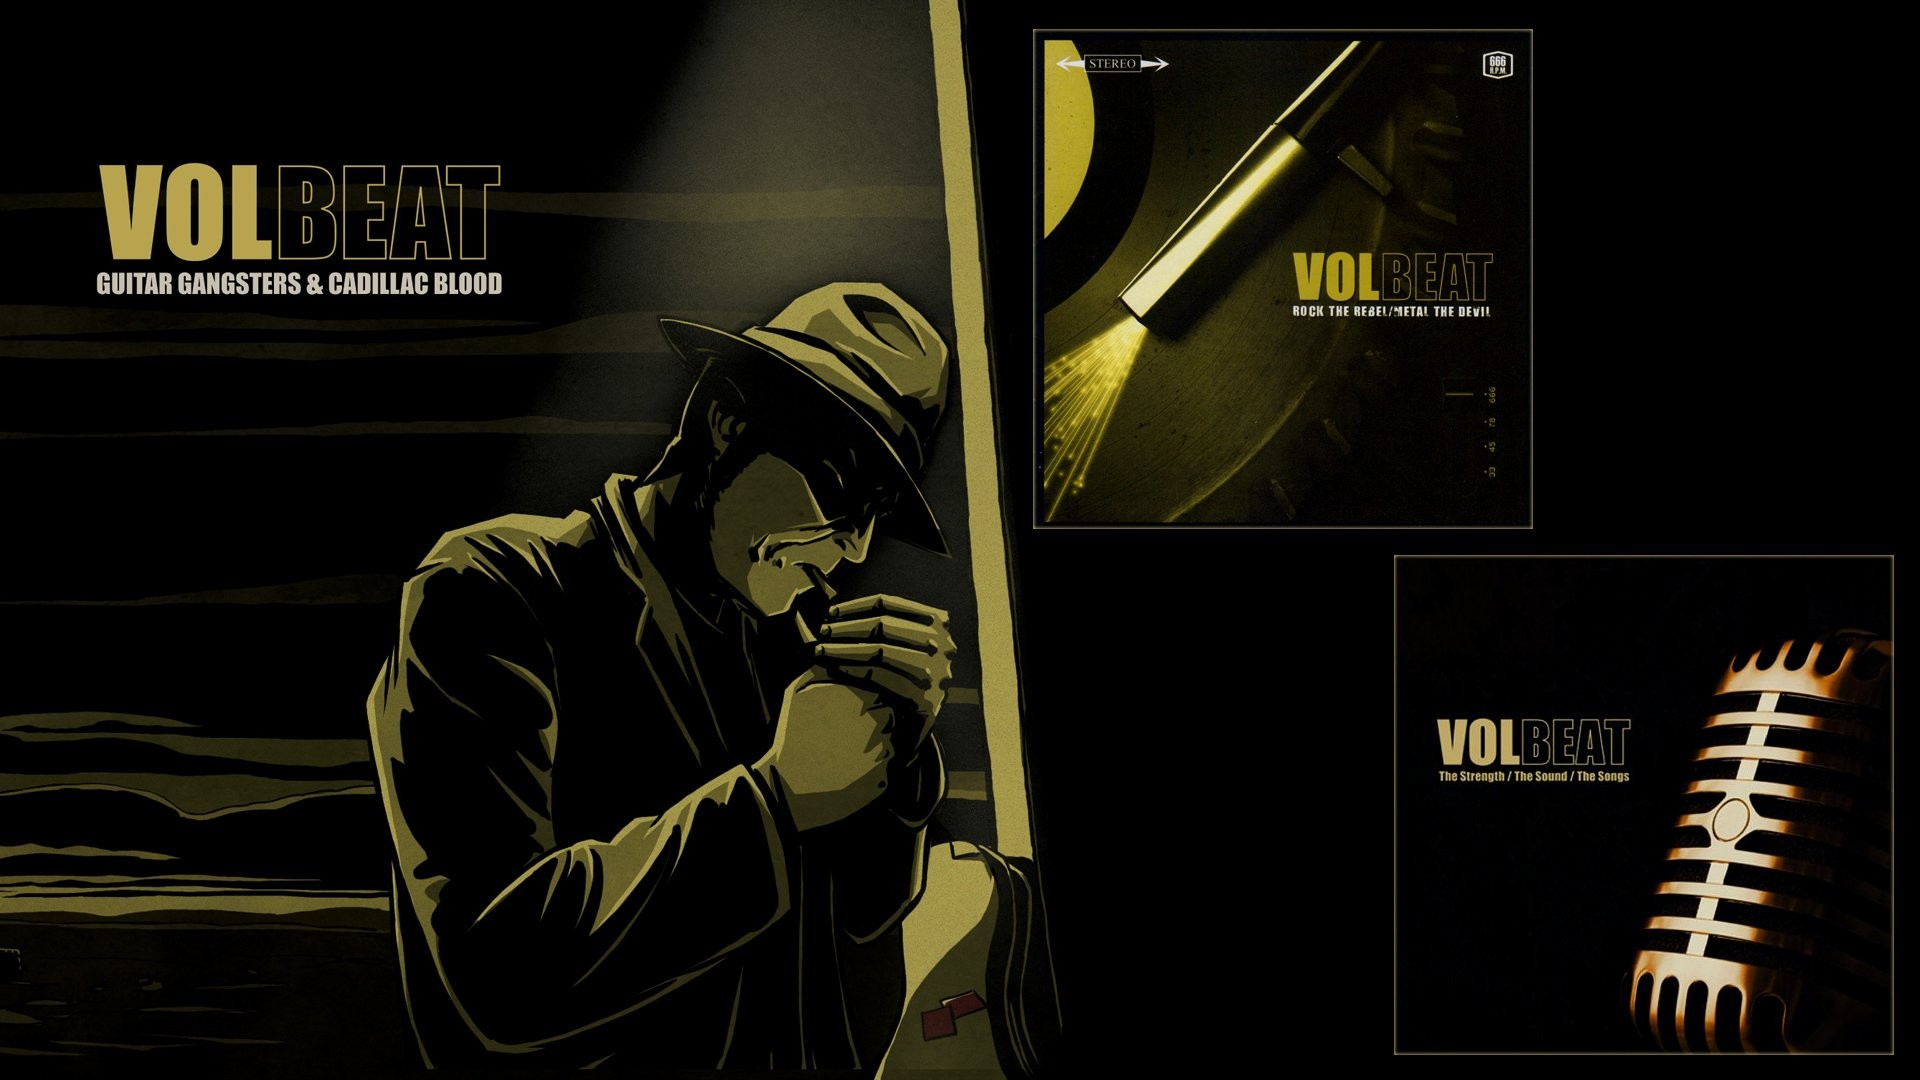 1920x1080 Volbeat Wallpaper Pictures, Images Photos | Photobucket